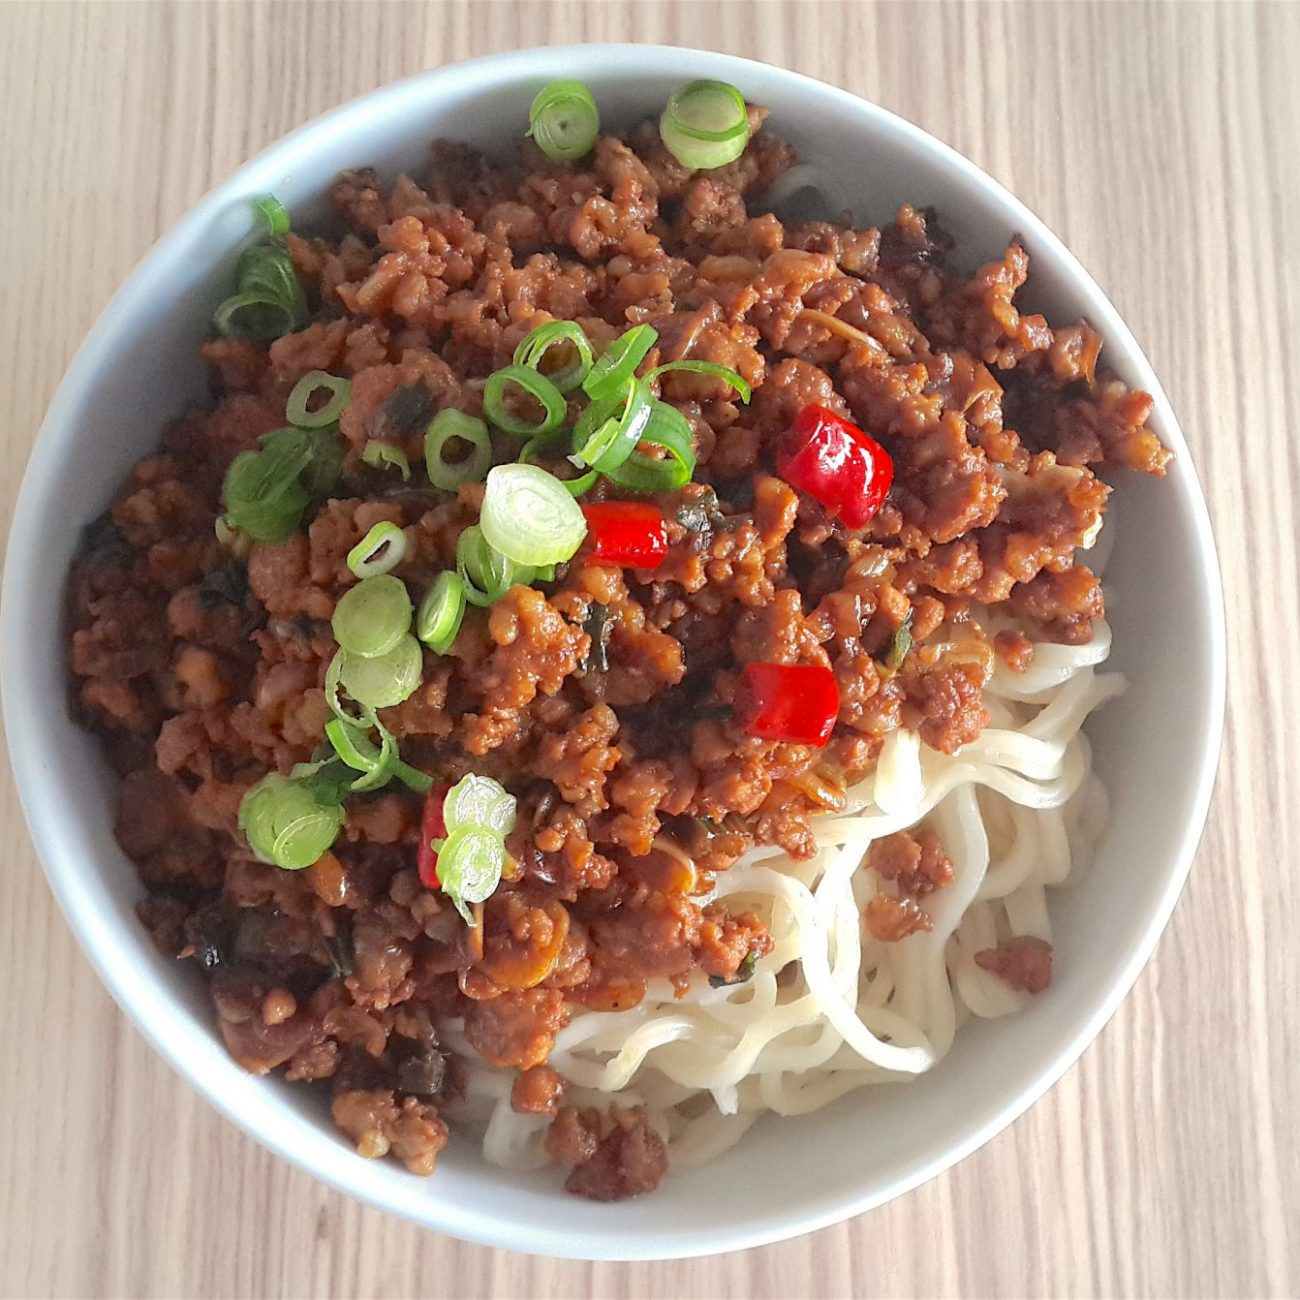 Minced Pork and Tung Choy